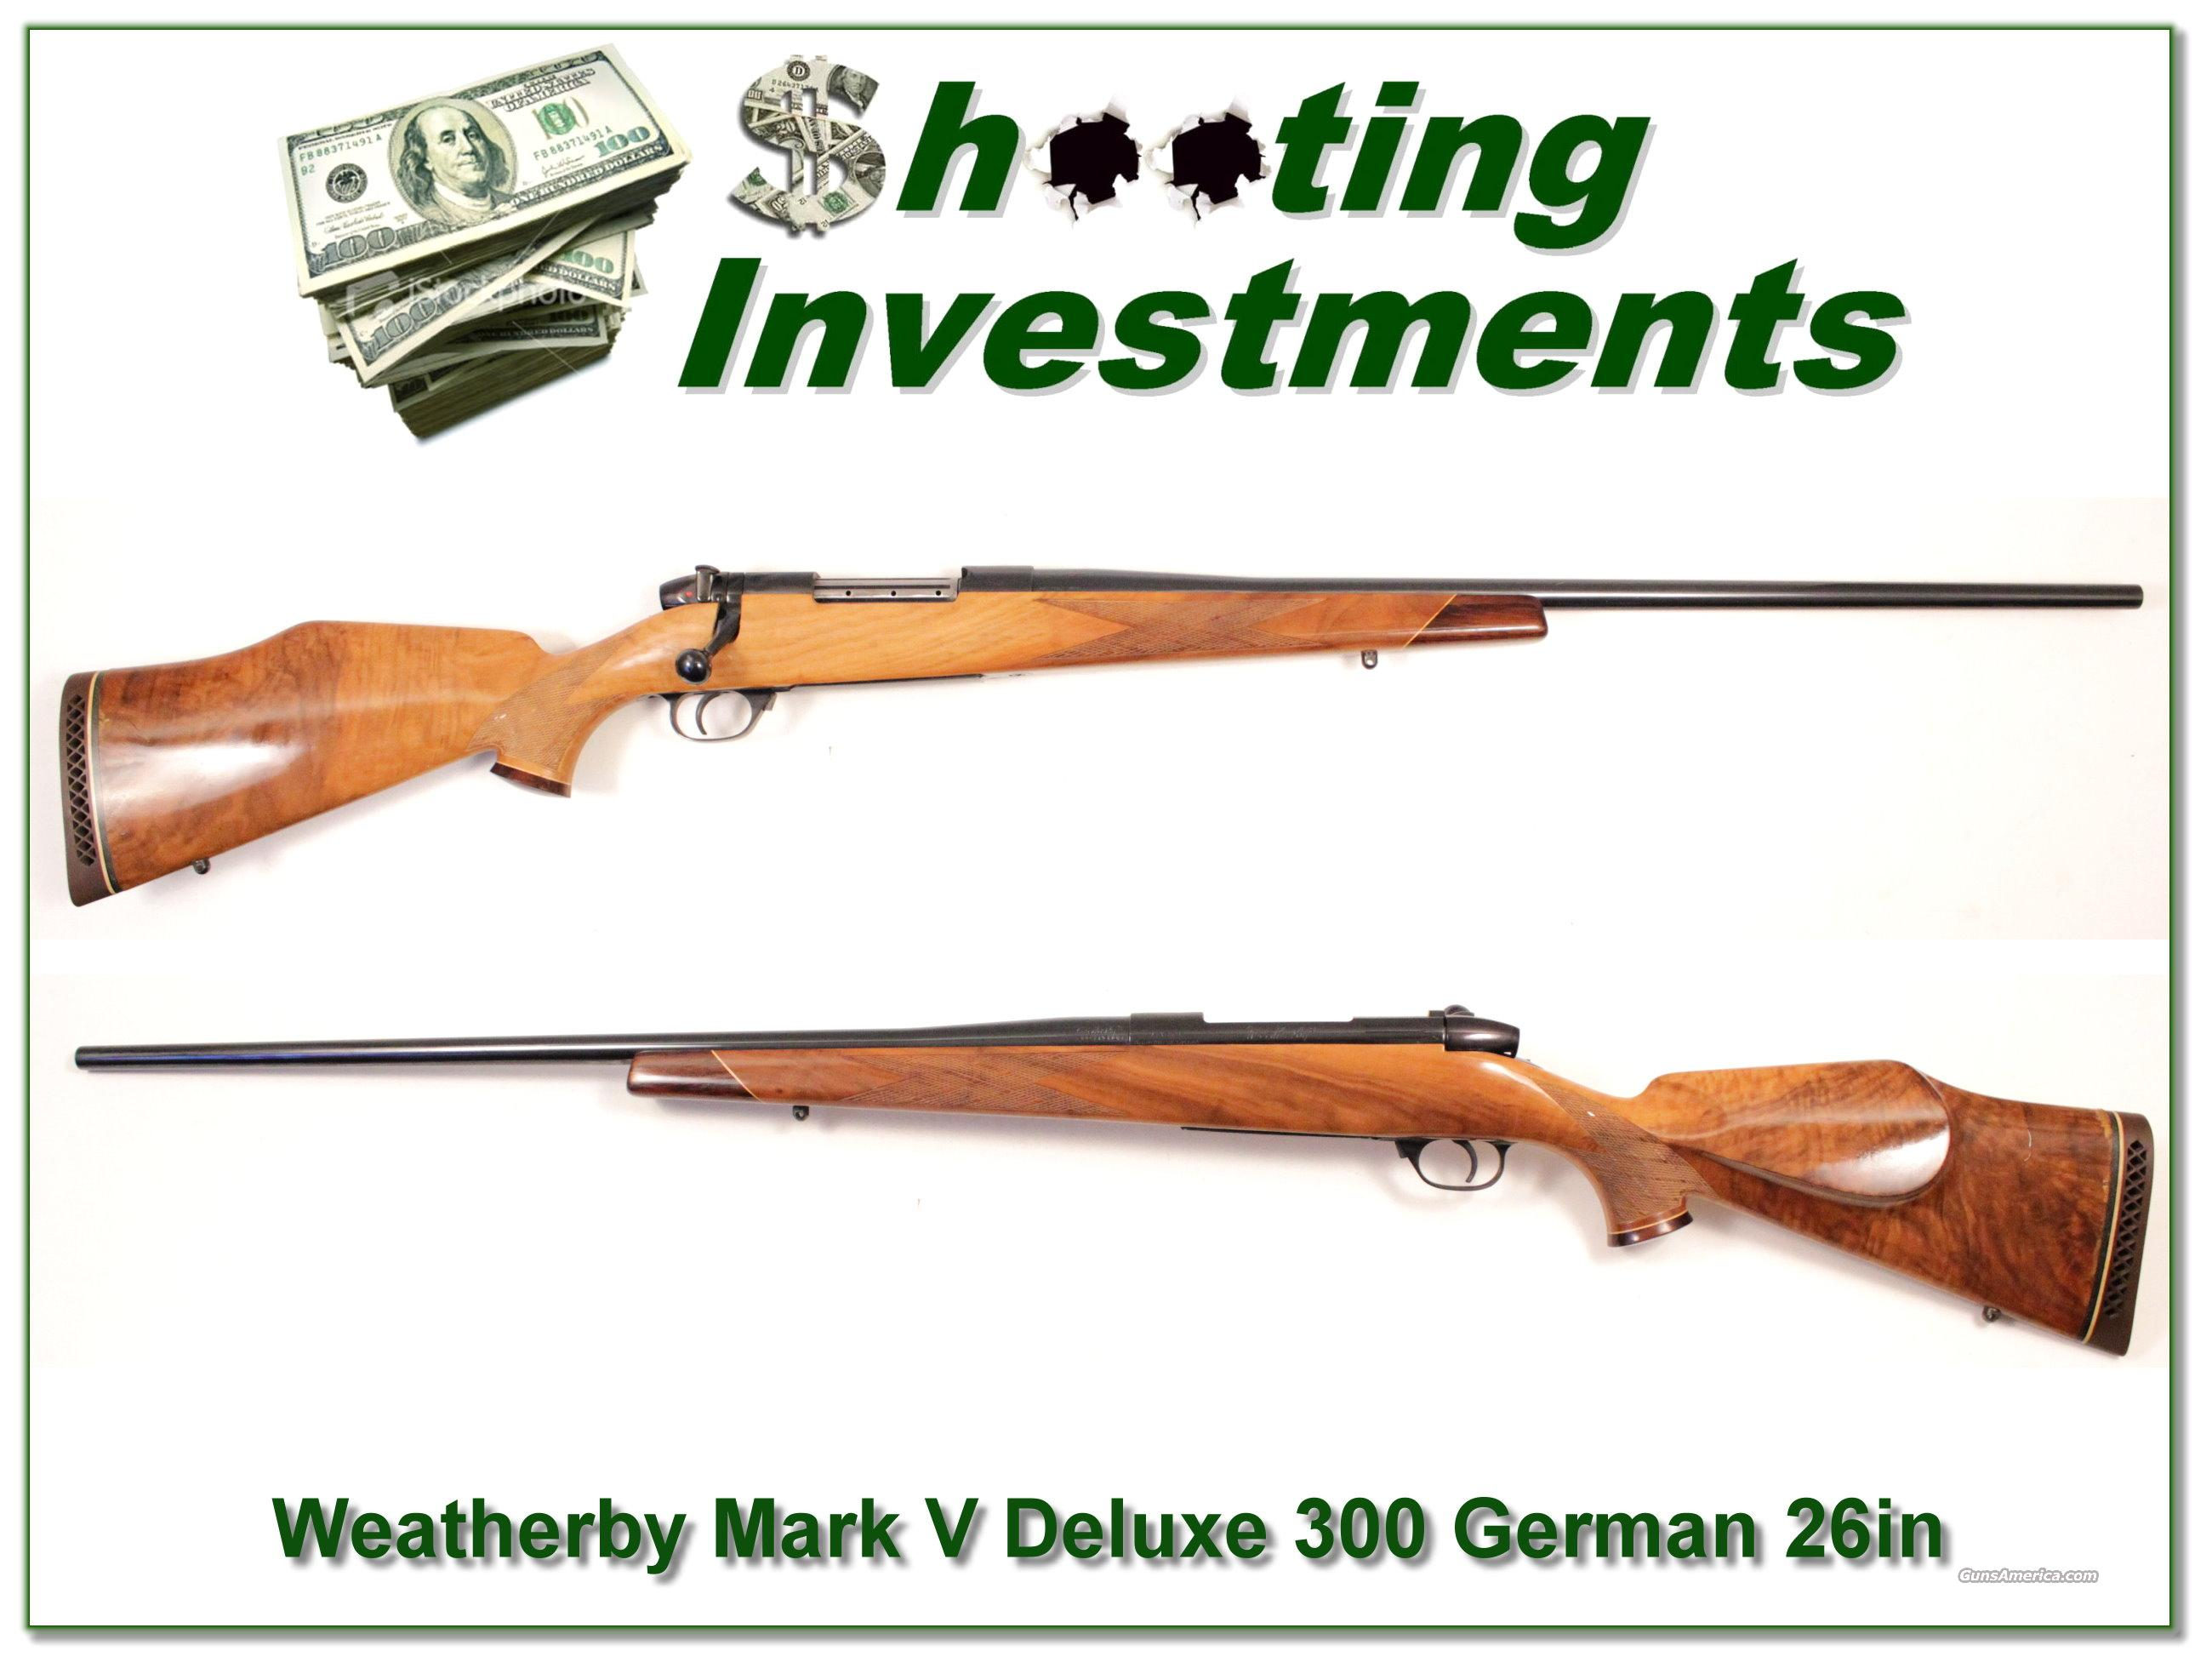 Weatherby Mark V Deluxe German 26in XX Wood!  Guns > Rifles > Weatherby Rifles > Sporting